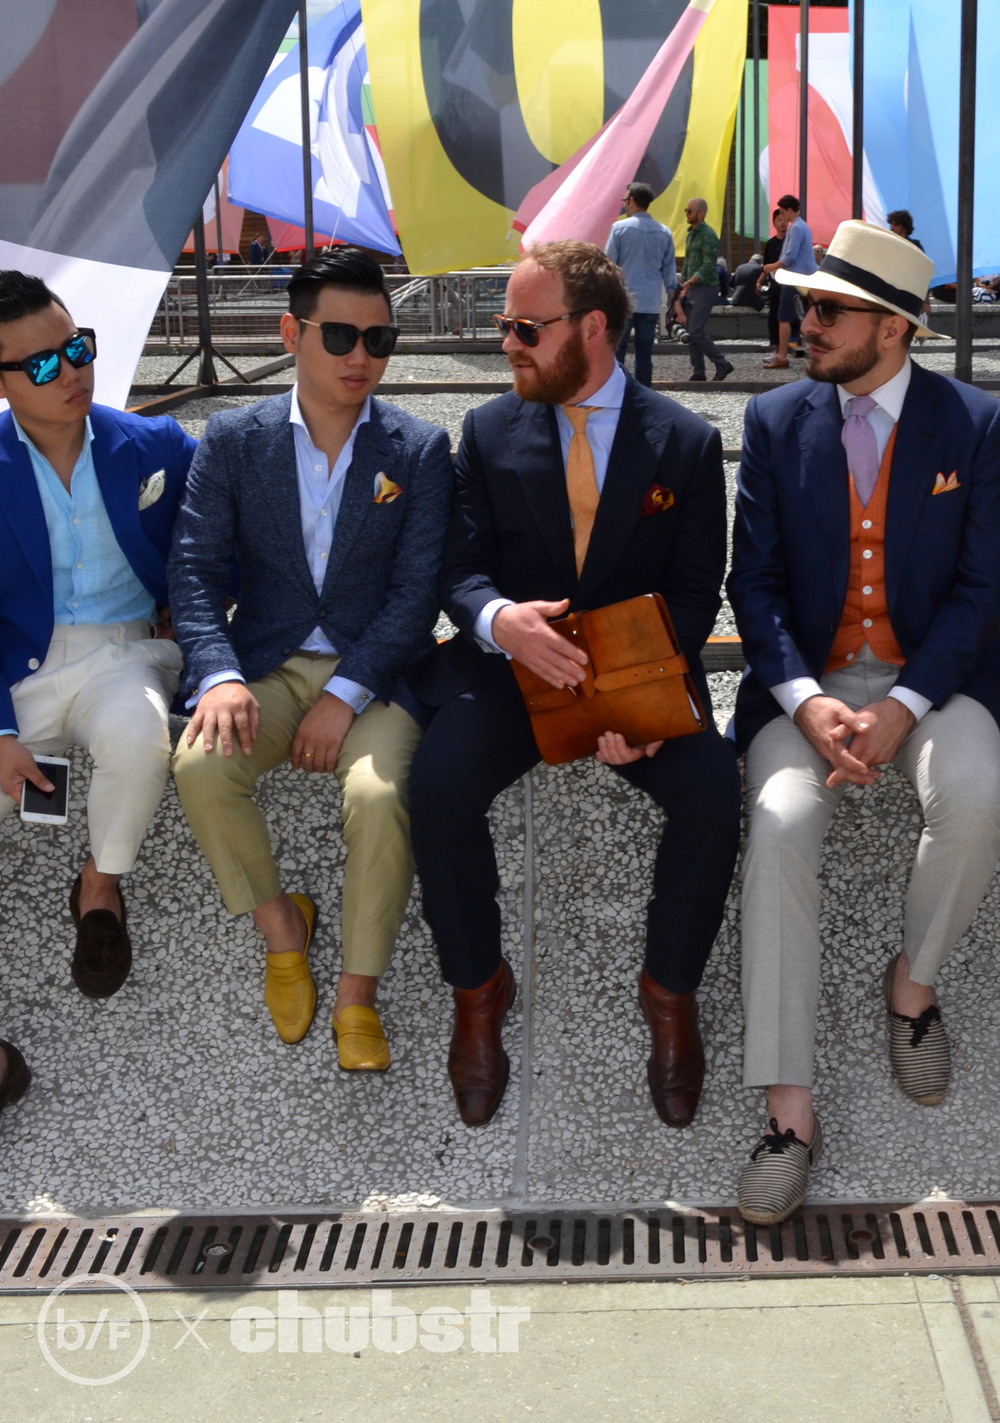 BF032_PittiUomo88_FB_25.jpg